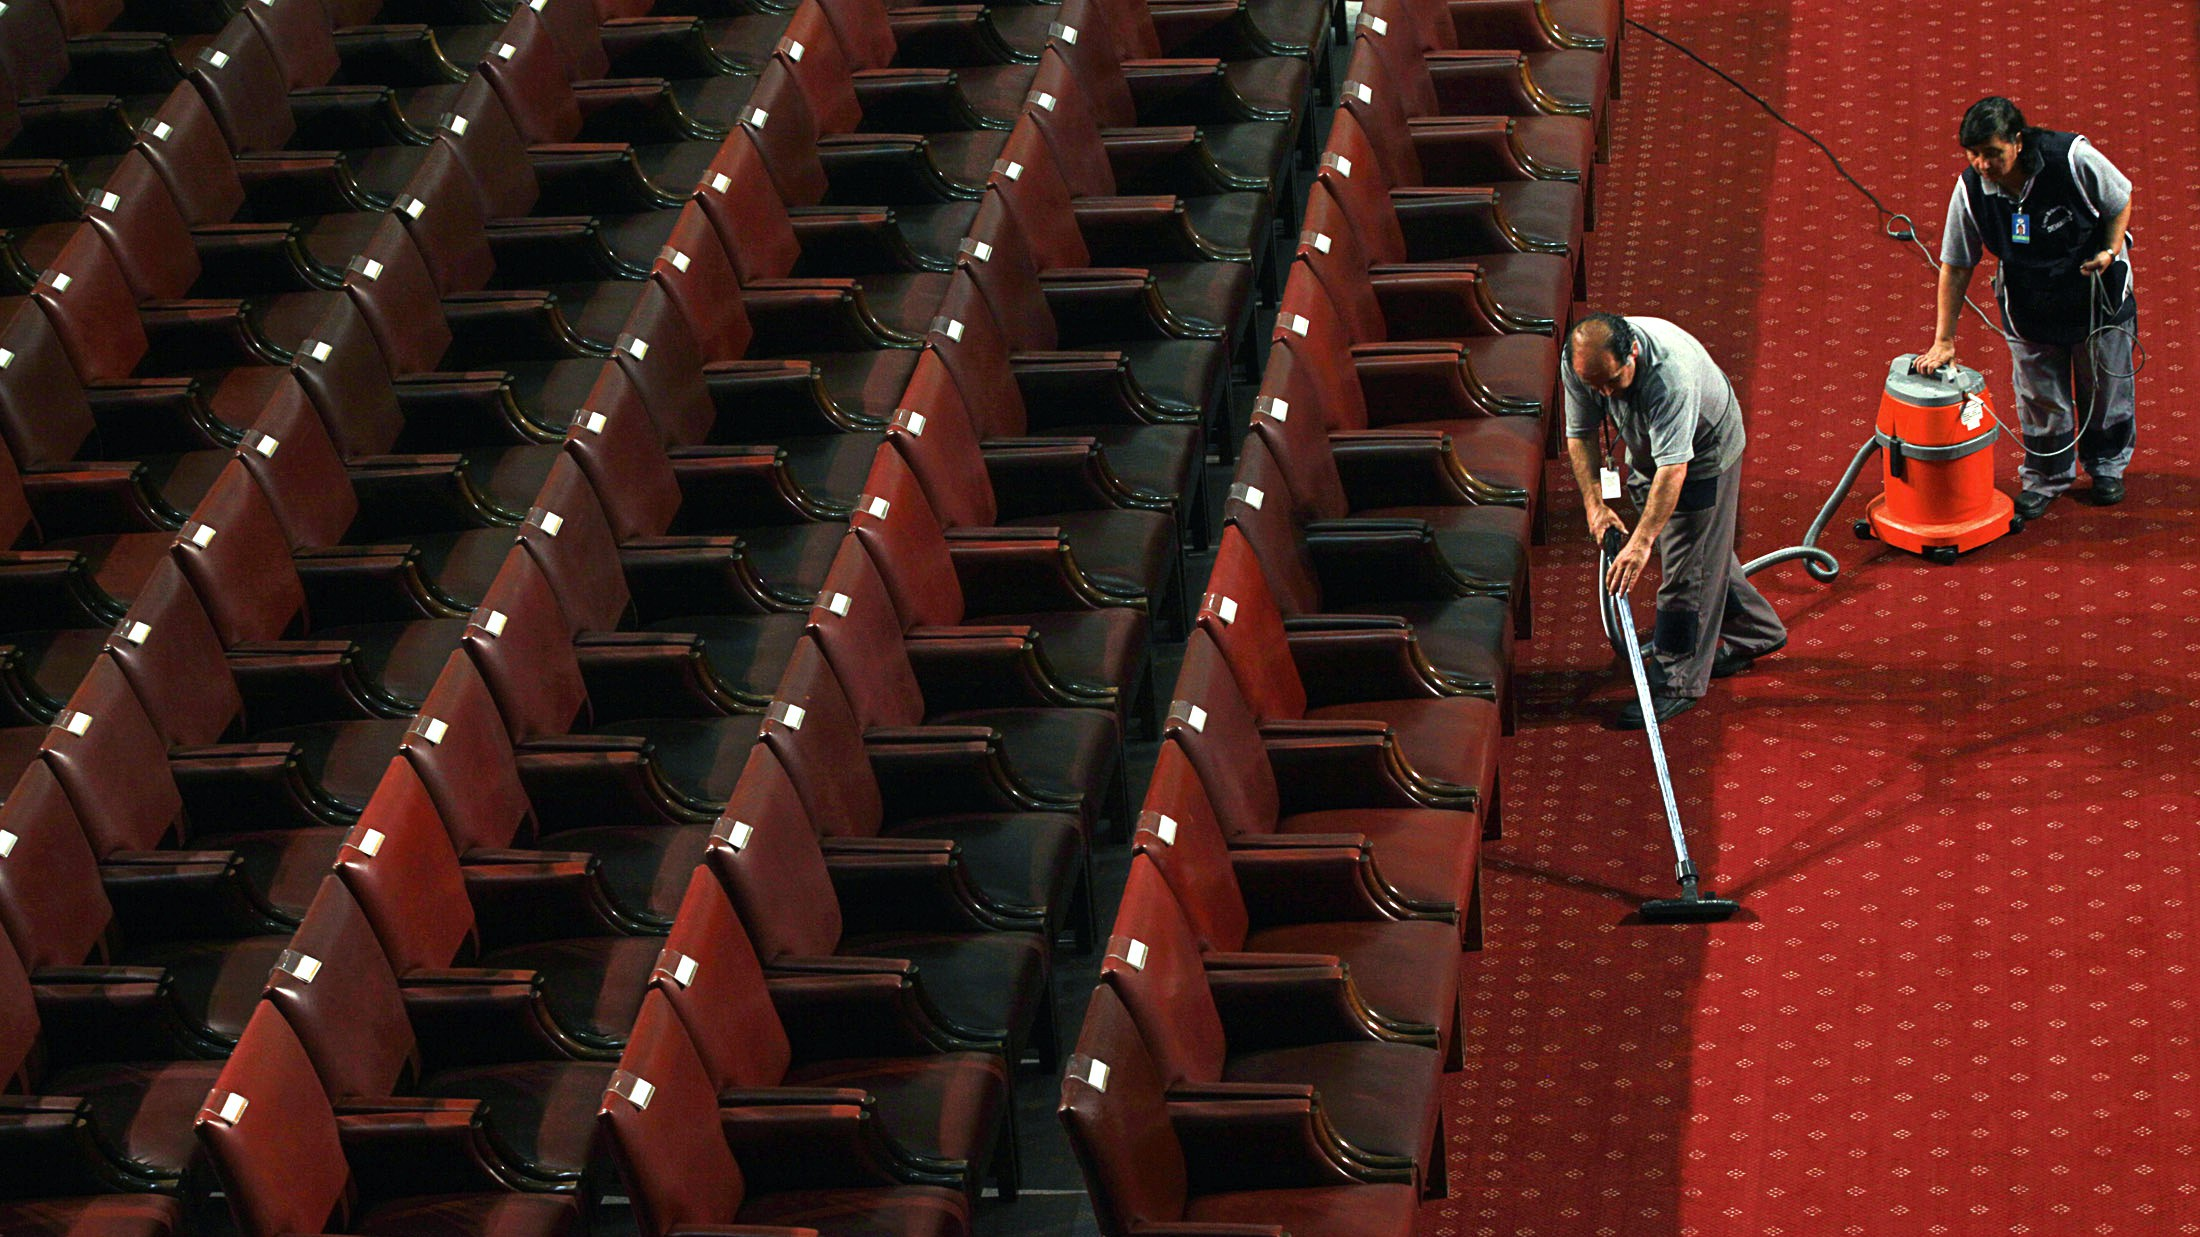 Workers clean the carpet in the Chilean Congress before the inauguration ceremony for President-elect Sebastian Pinera, in Valparaiso March 11, 2010. Conservative billionaire Pinera takes office as Chile's new president on Thursday, tasked with rebuilding the country after one of the worst earthquakes ever recorded killed hundreds of people less than two weeks ago.